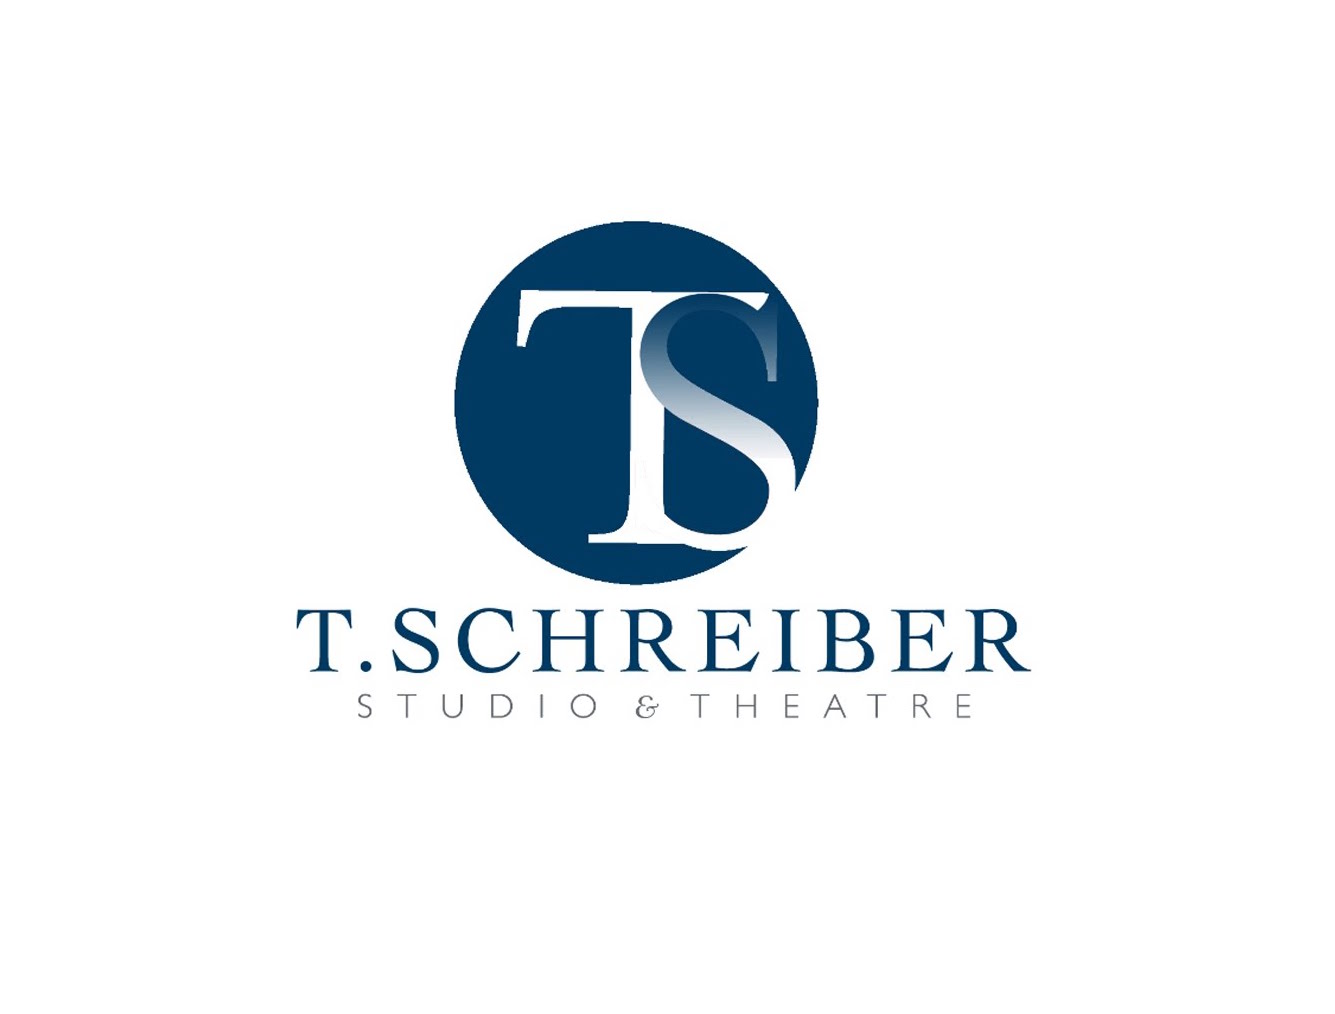 Producing director - As the in-house producer at T. Schreiber Theatre, Halle managed the production & design teams, press, marketing, and communications for the 48th theatrical season of this historic non-profit theatre company.